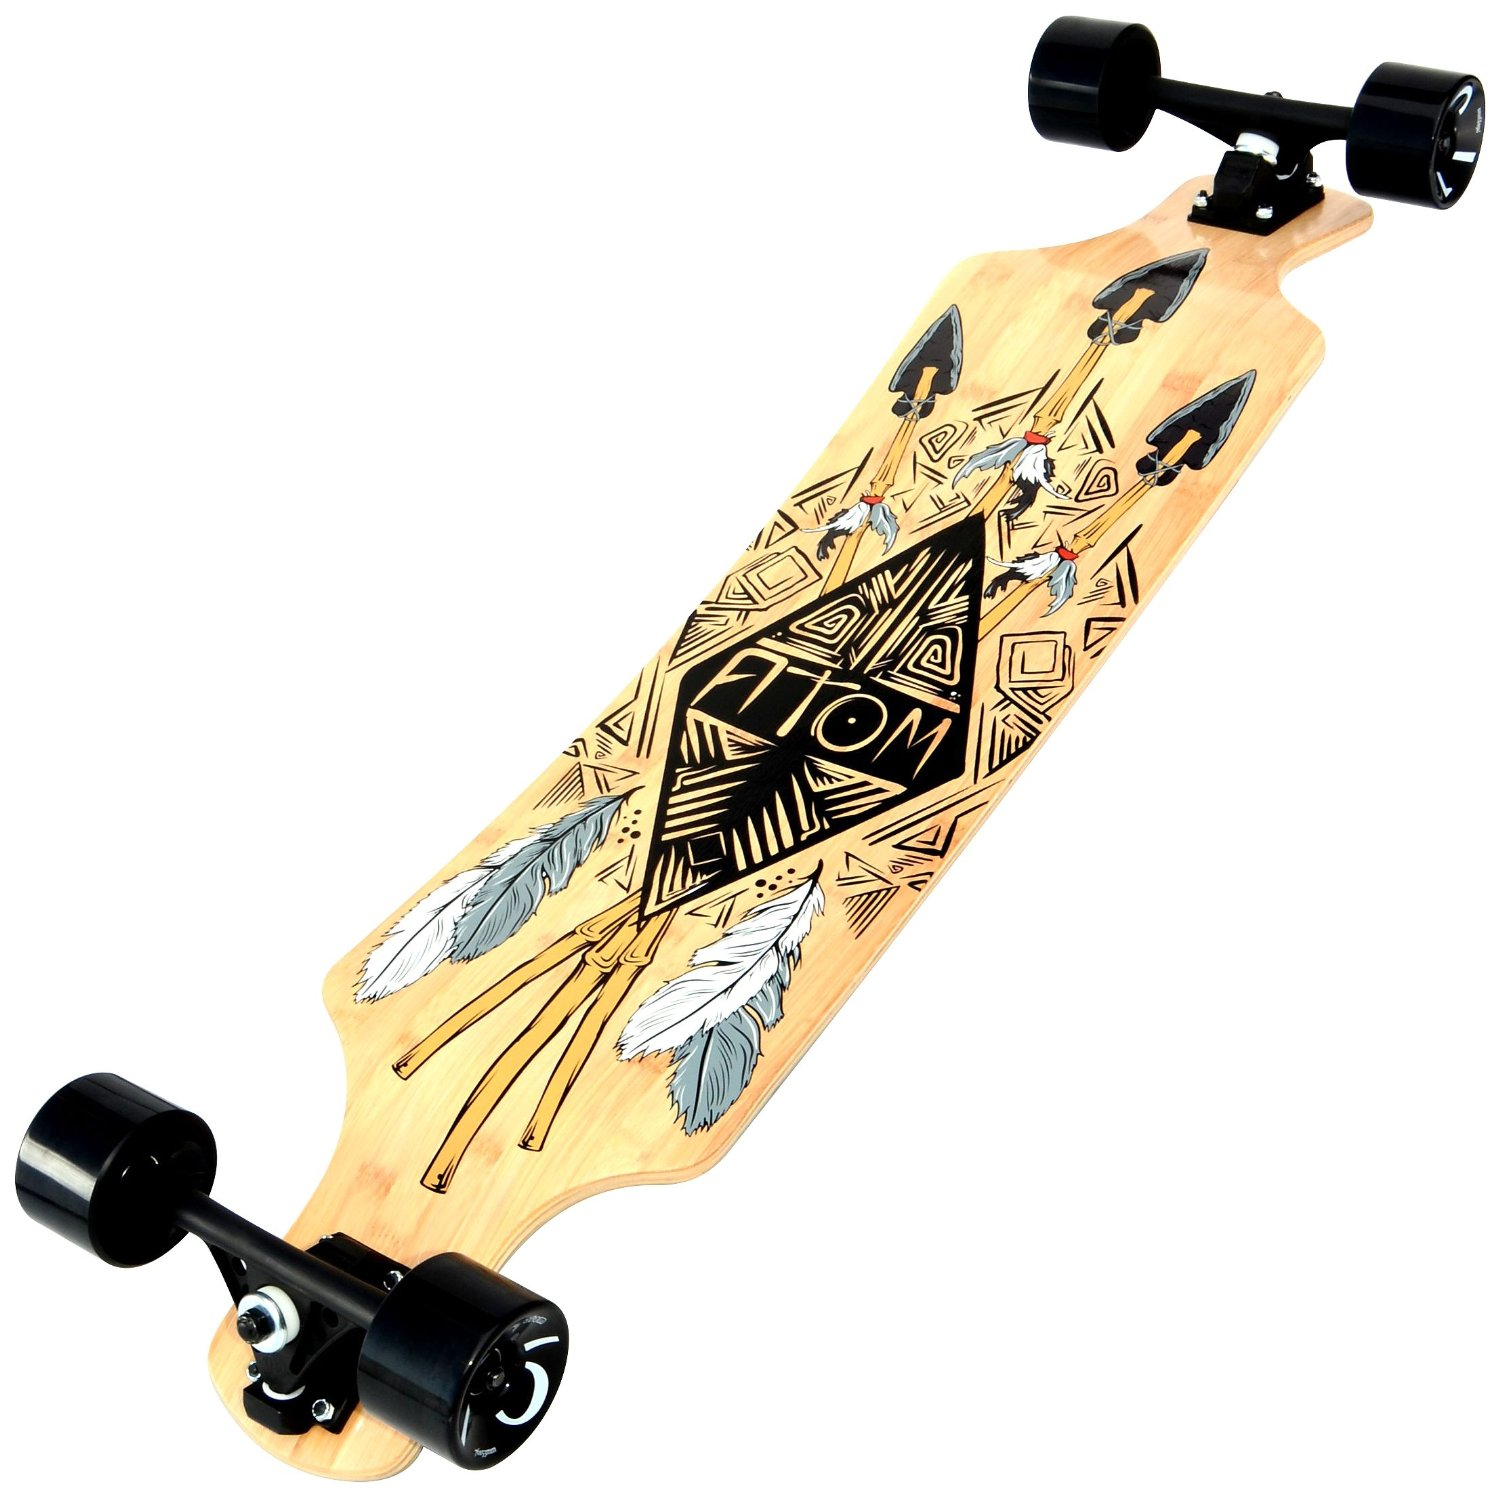 Atom Bamboo Drop Through Longboard 40 inch